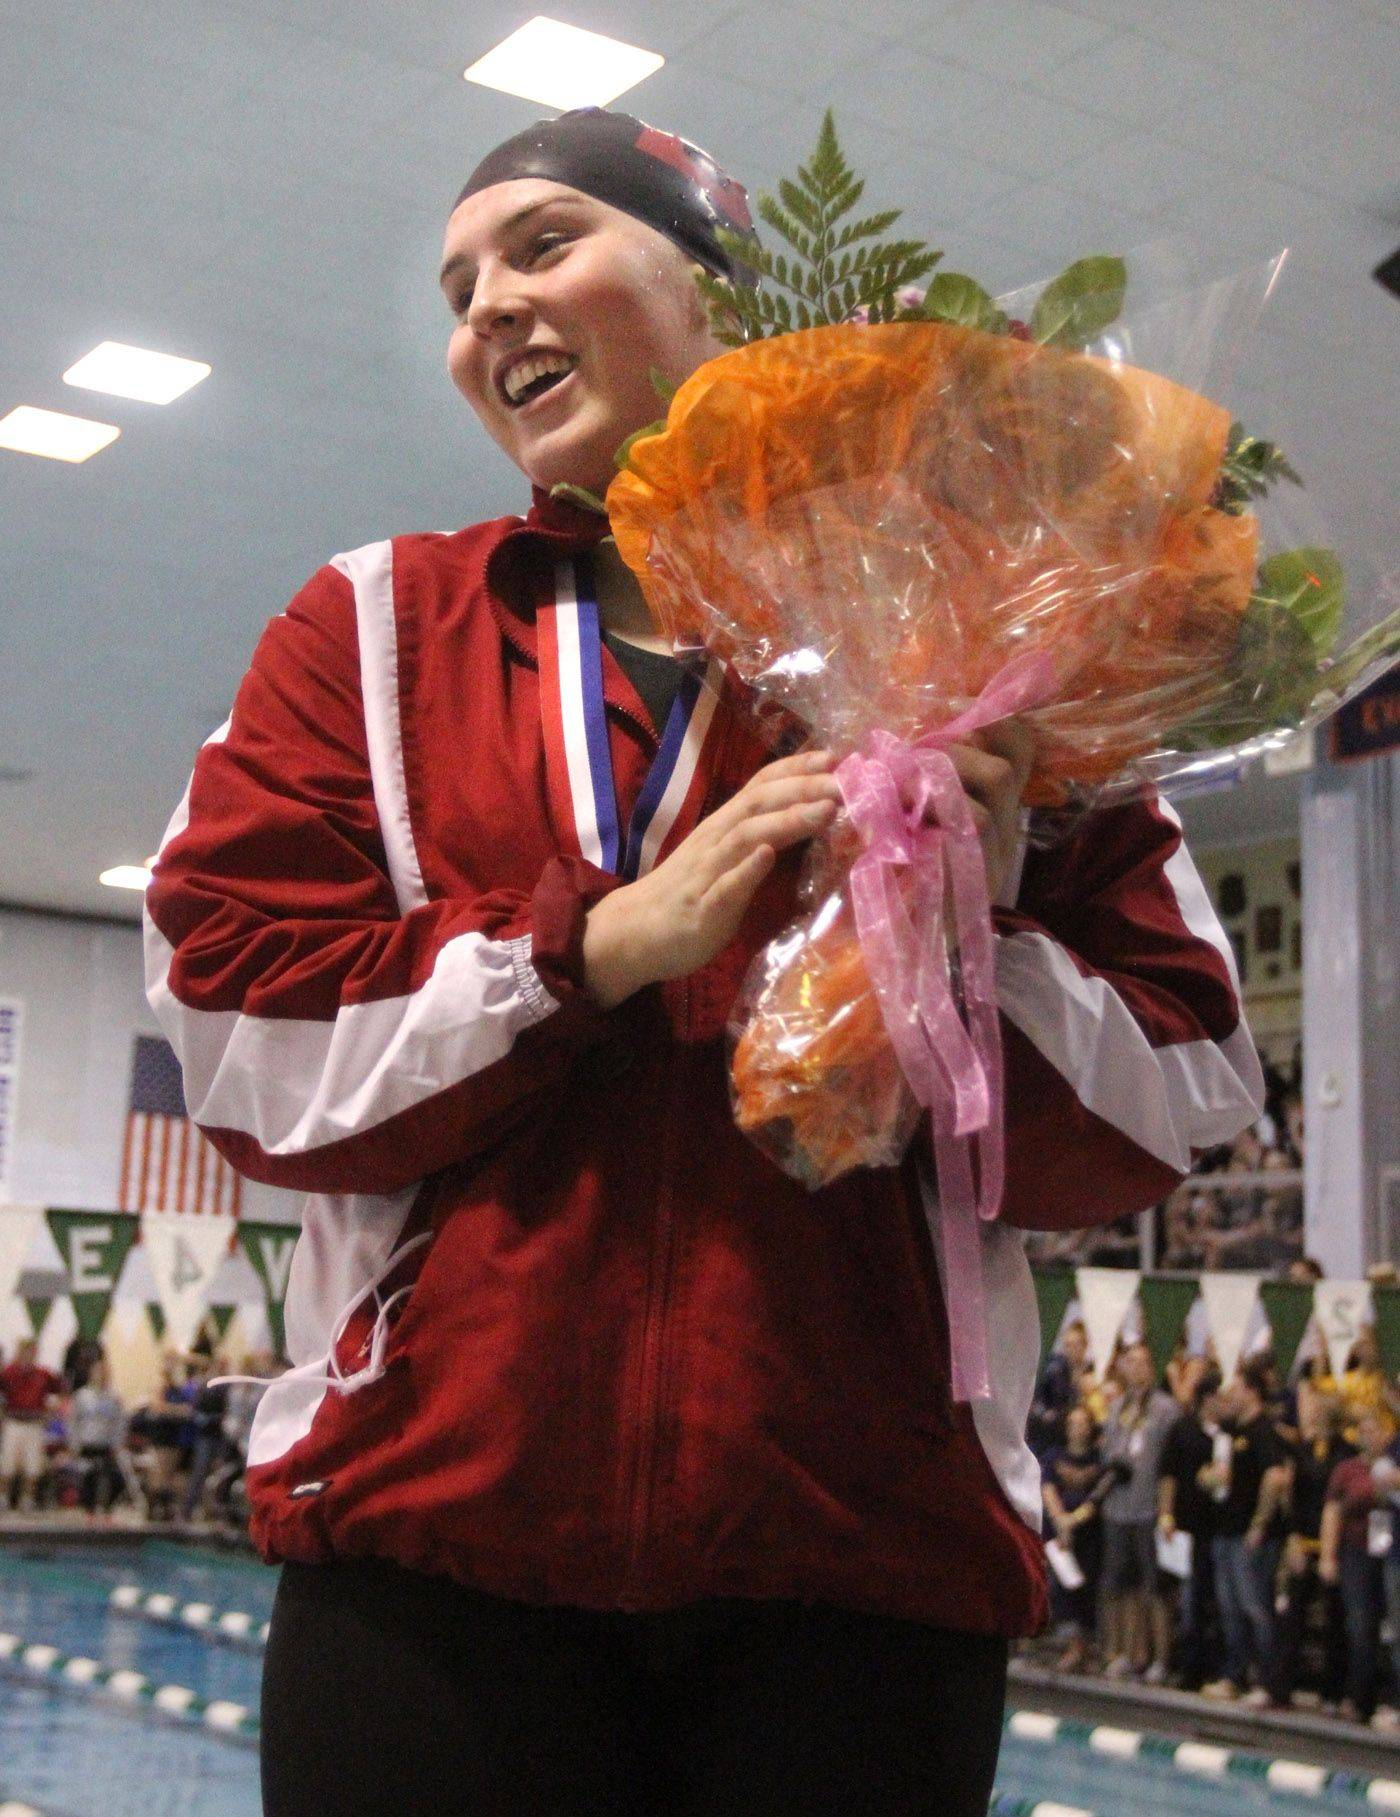 Barrington's Erika Elliott finished eleventh in the 100-yard freestyle at IHSA state championships in Winnetka on Saturday, November 19th.